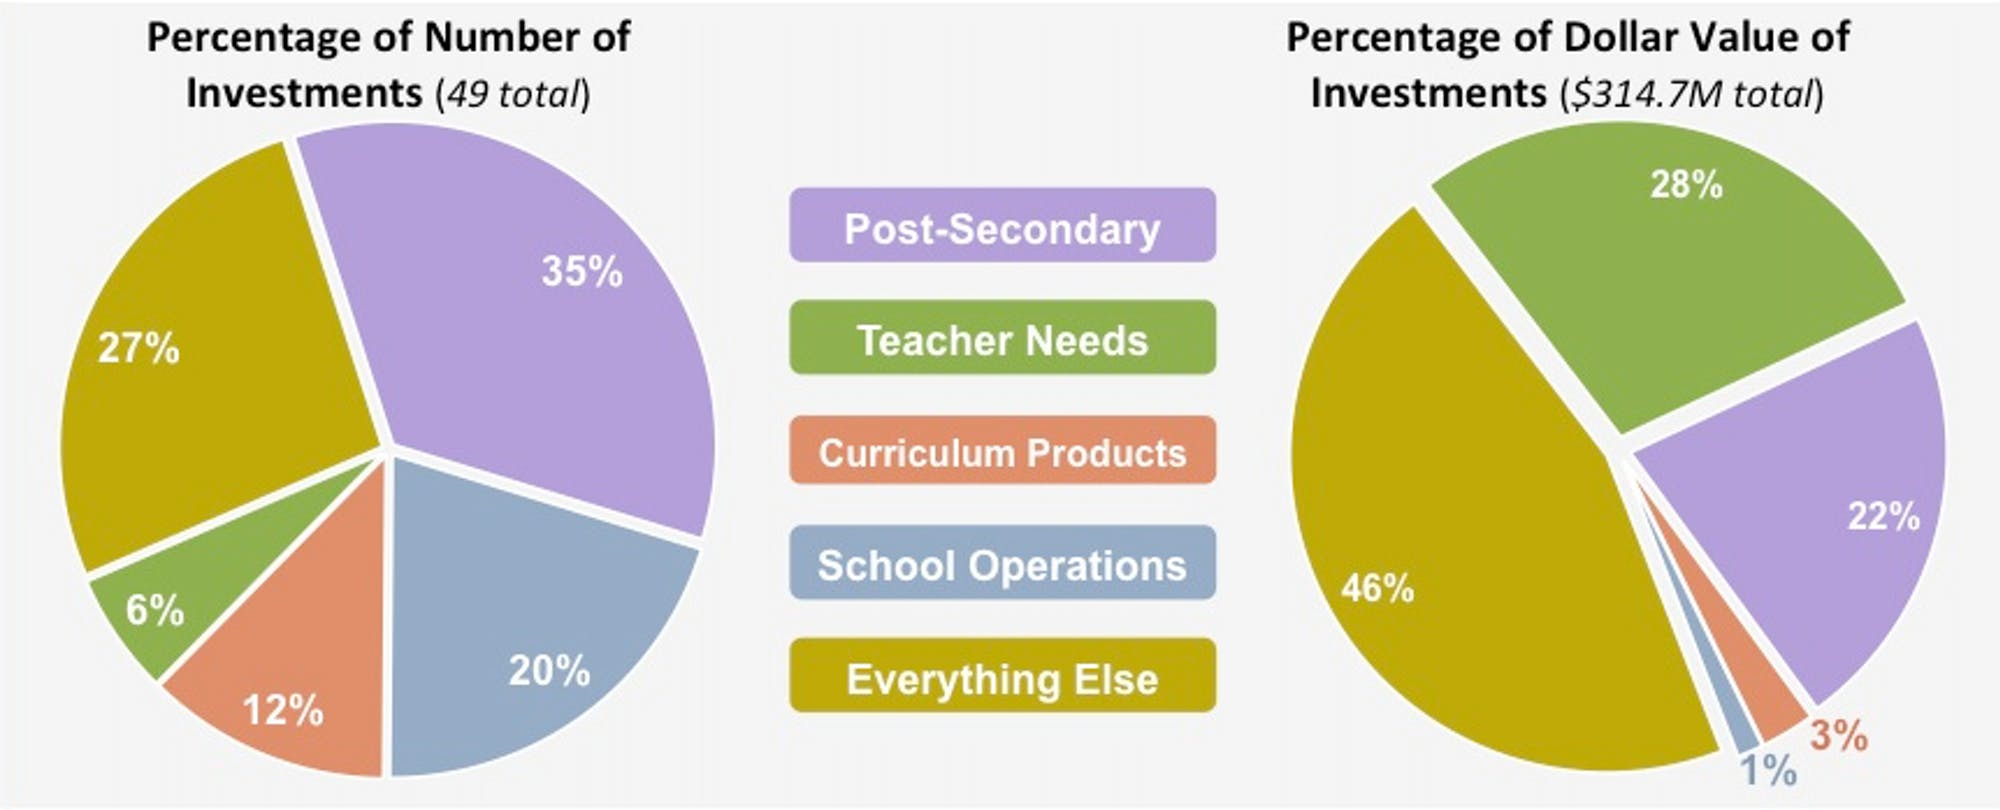 ​Edtech Investments Hold Steady at $315M in Q3 2014